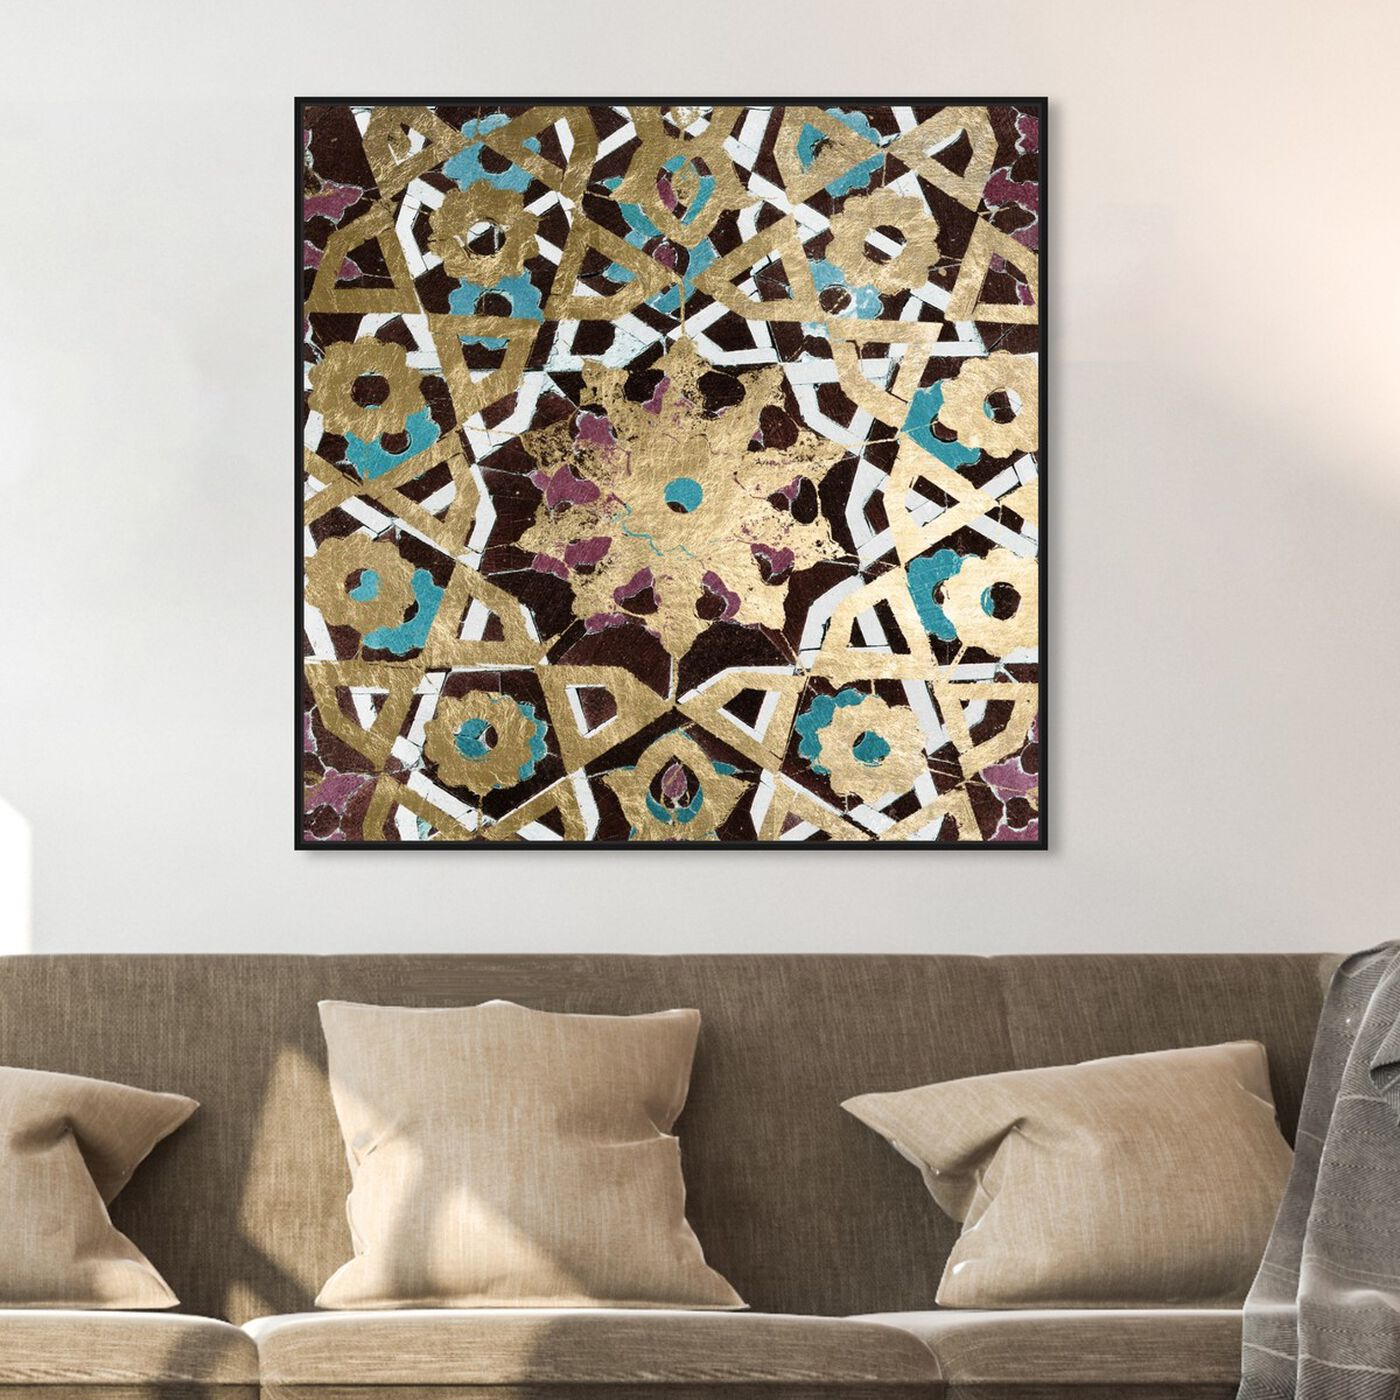 Hanging view of Falling into Place featuring abstract and patterns art.